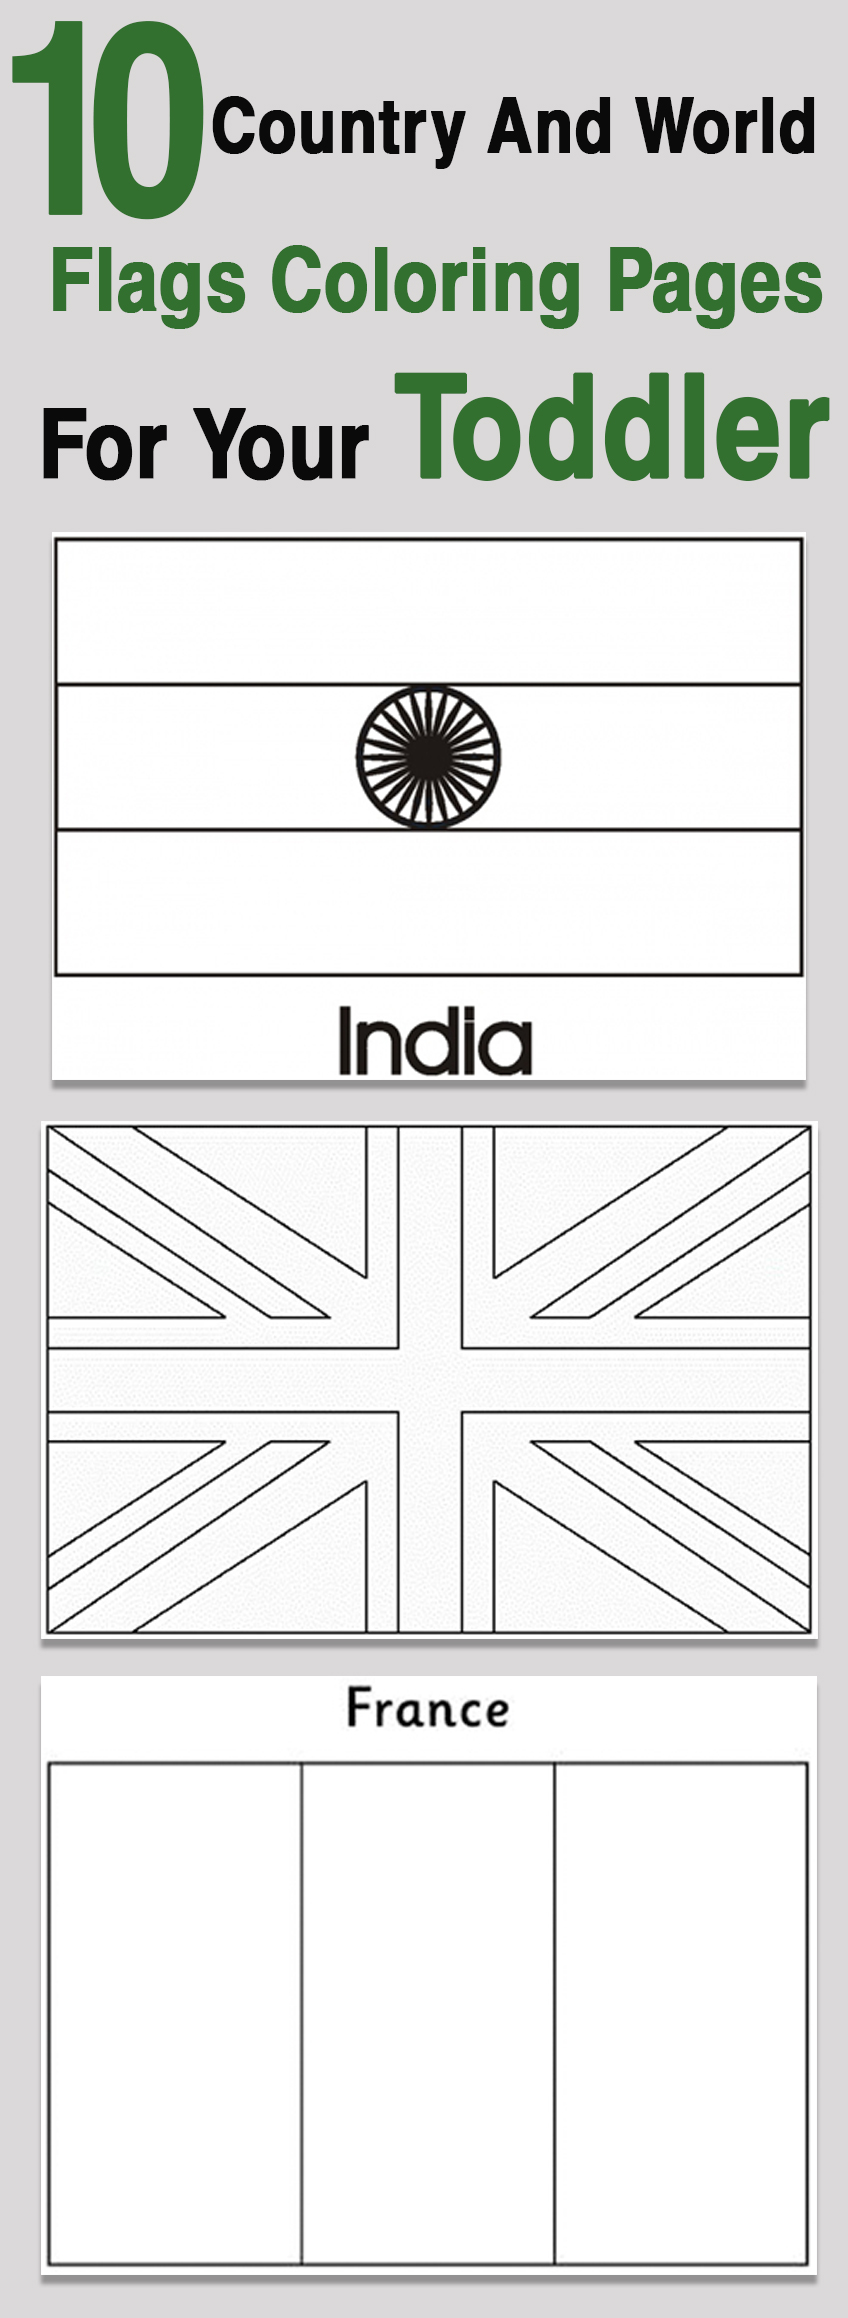 top 10 free printable country and world flags coloring pages online - Flags World Coloring Pages